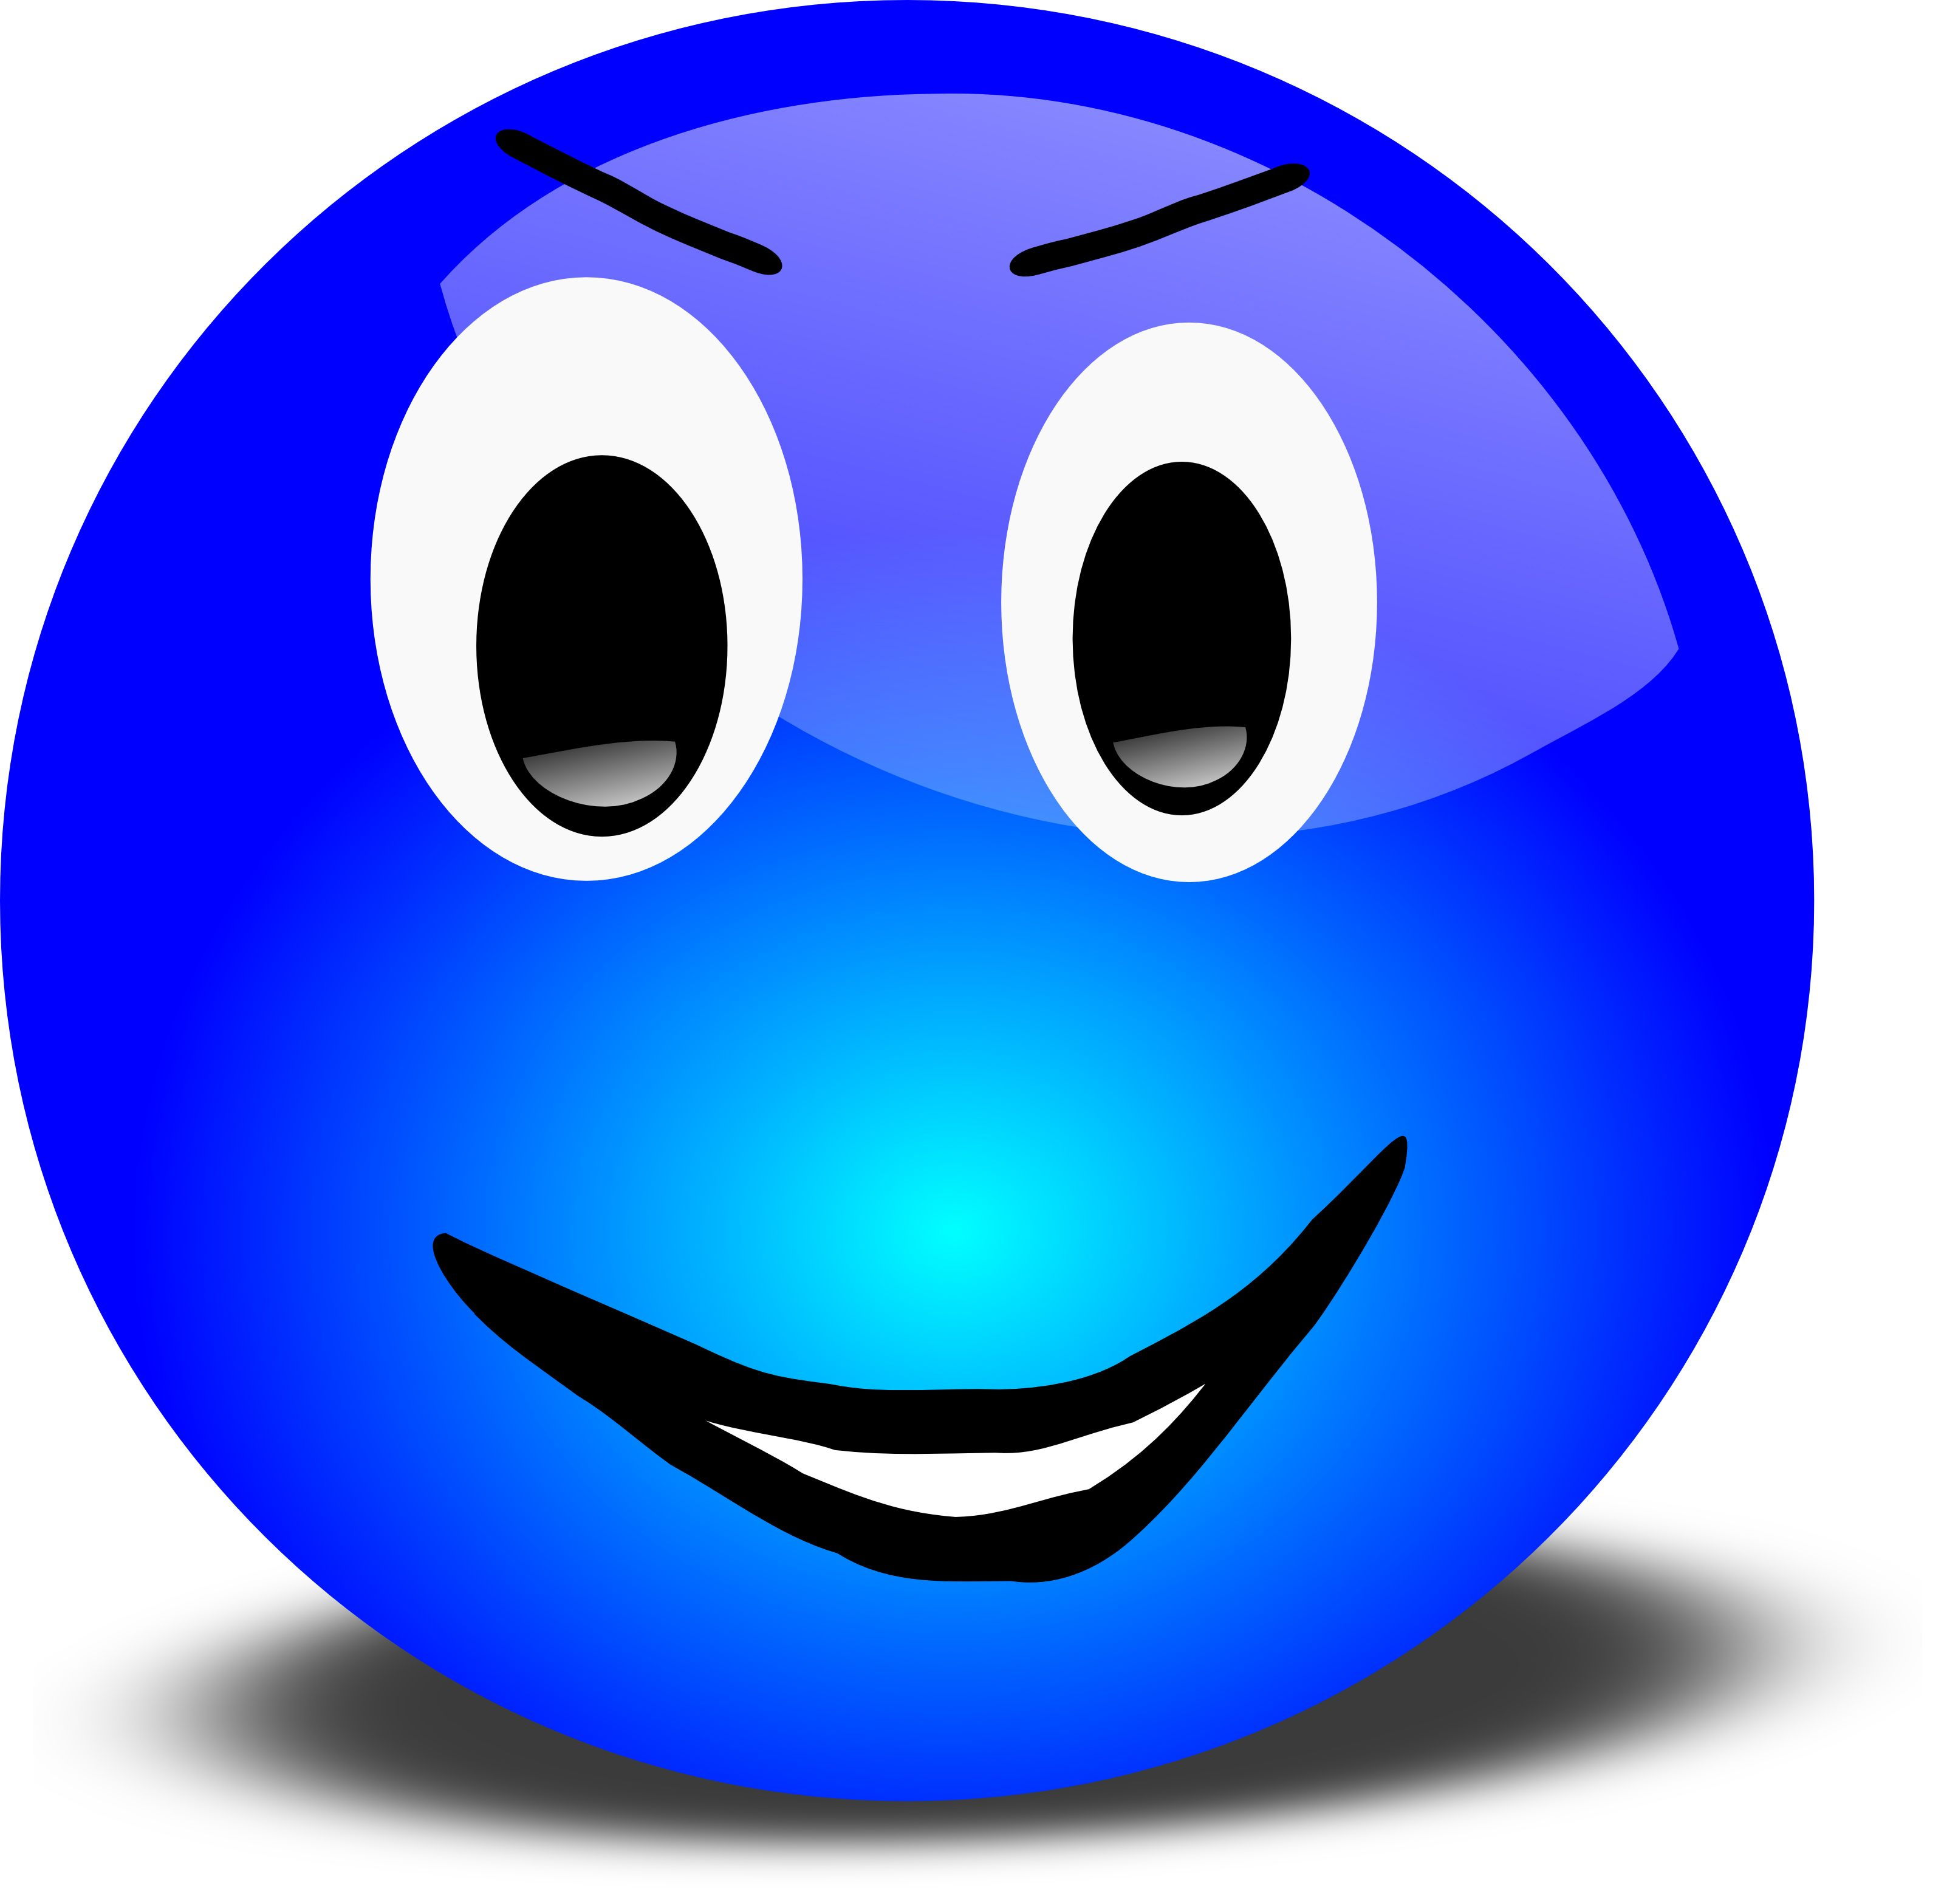 Free 3d Grinning Blue Smiley Face Clipart Illustration by.